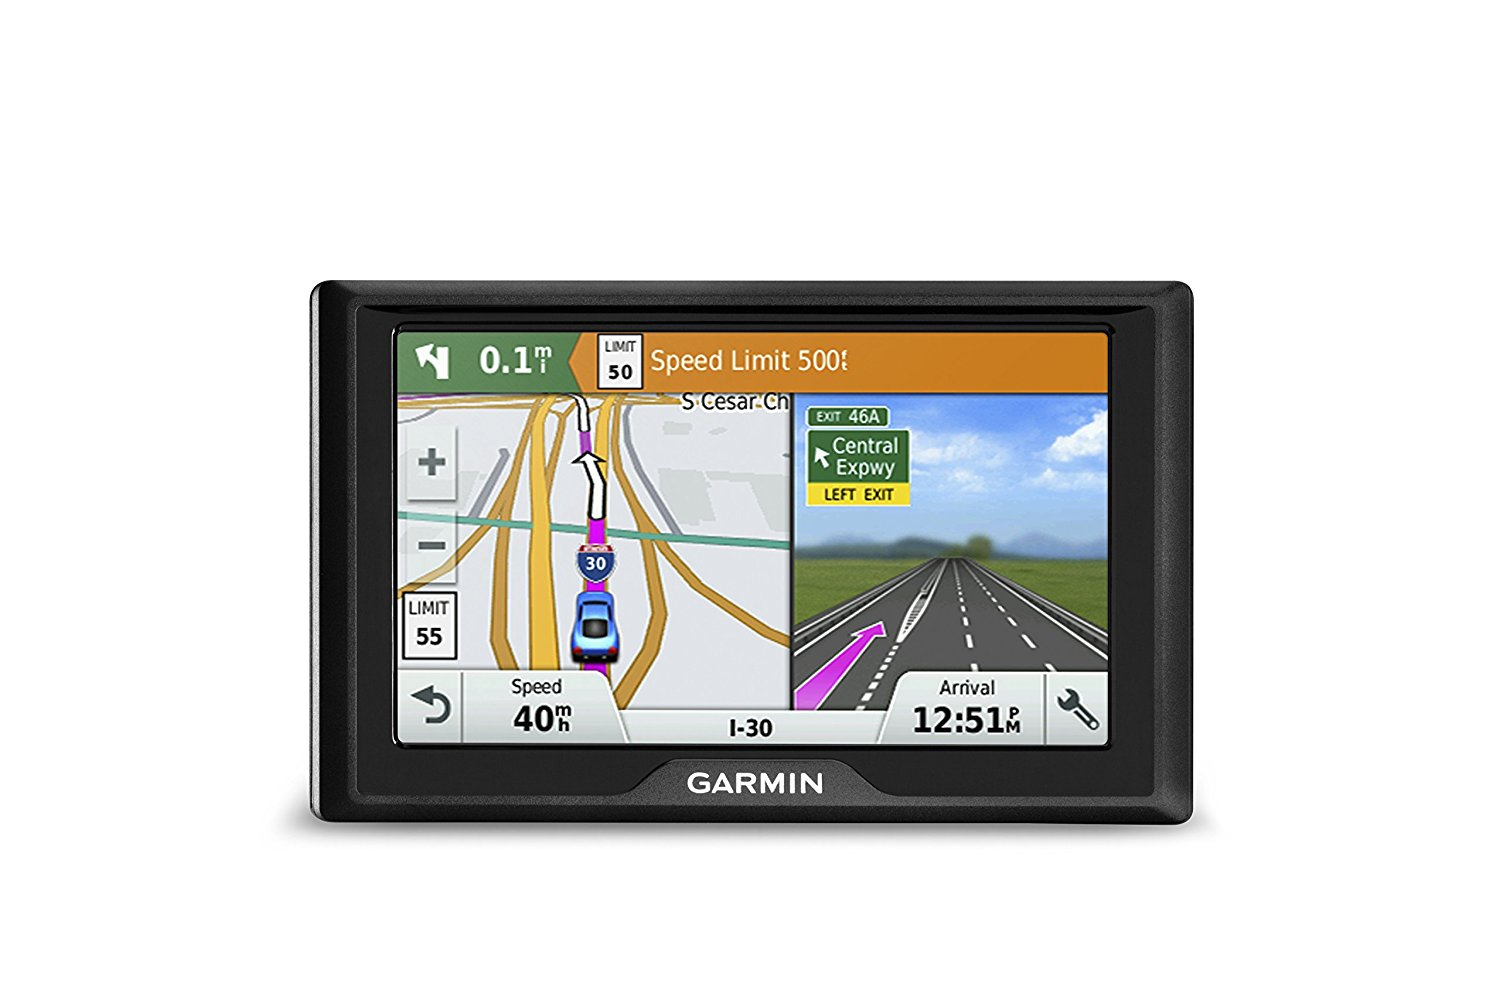 Drive 50 USA LM GPS Navigator System with Lifetime Maps, Spoken Turn-By-Turn Directions, Direct Access, Driver Alerts, and Foursquare Data